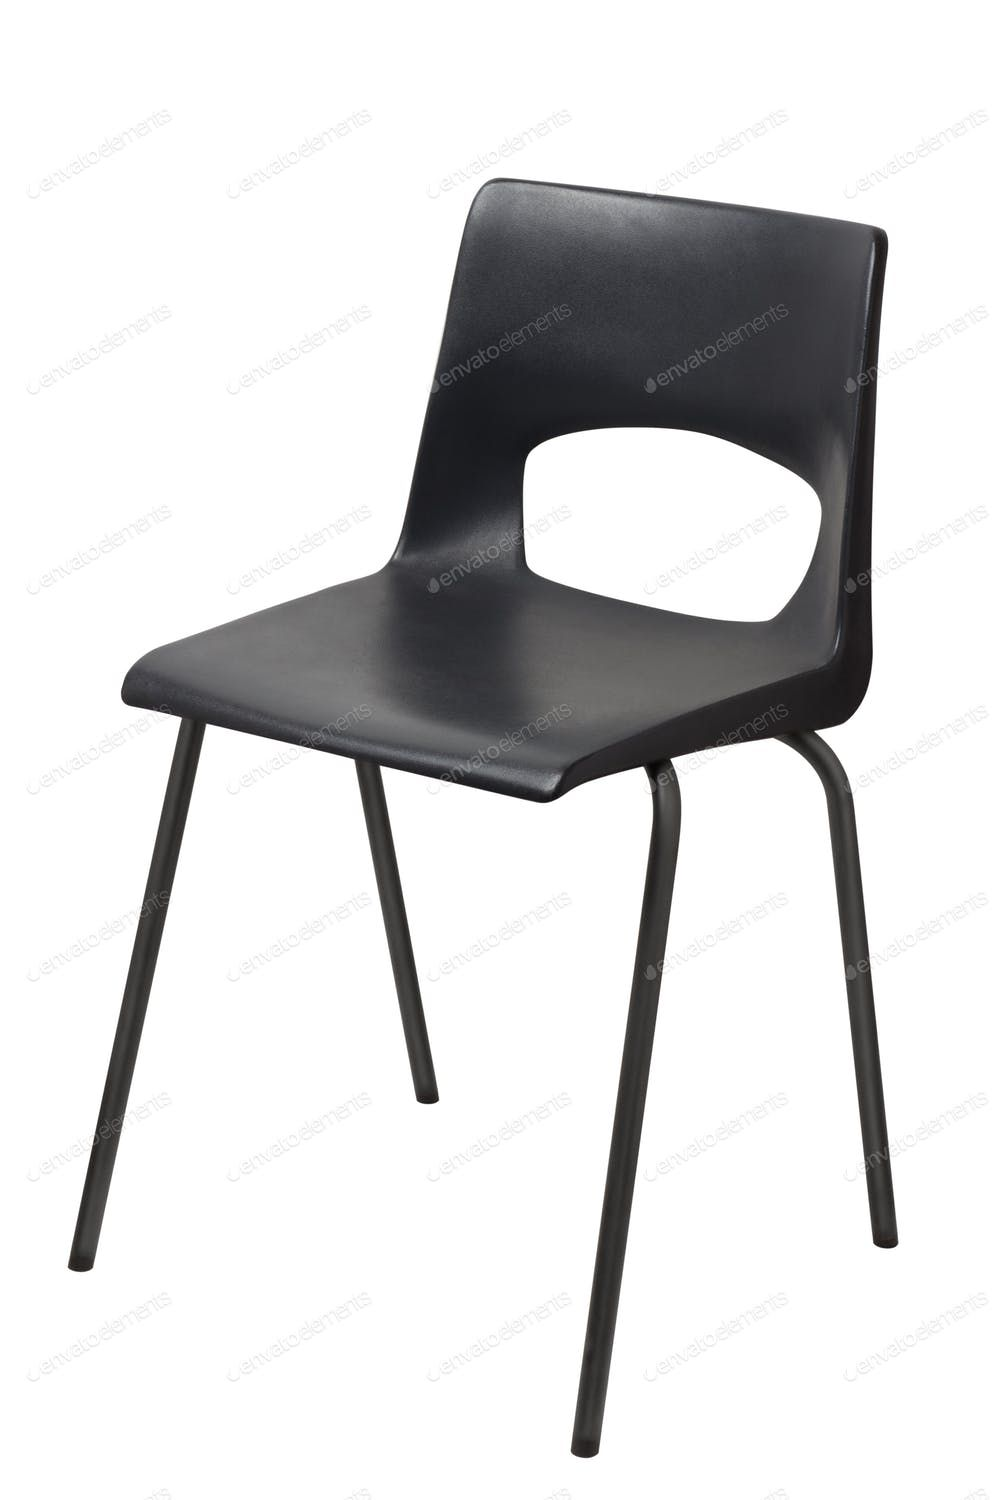 Black Chair Isolated On A White Background By Ozaiachin S Photos